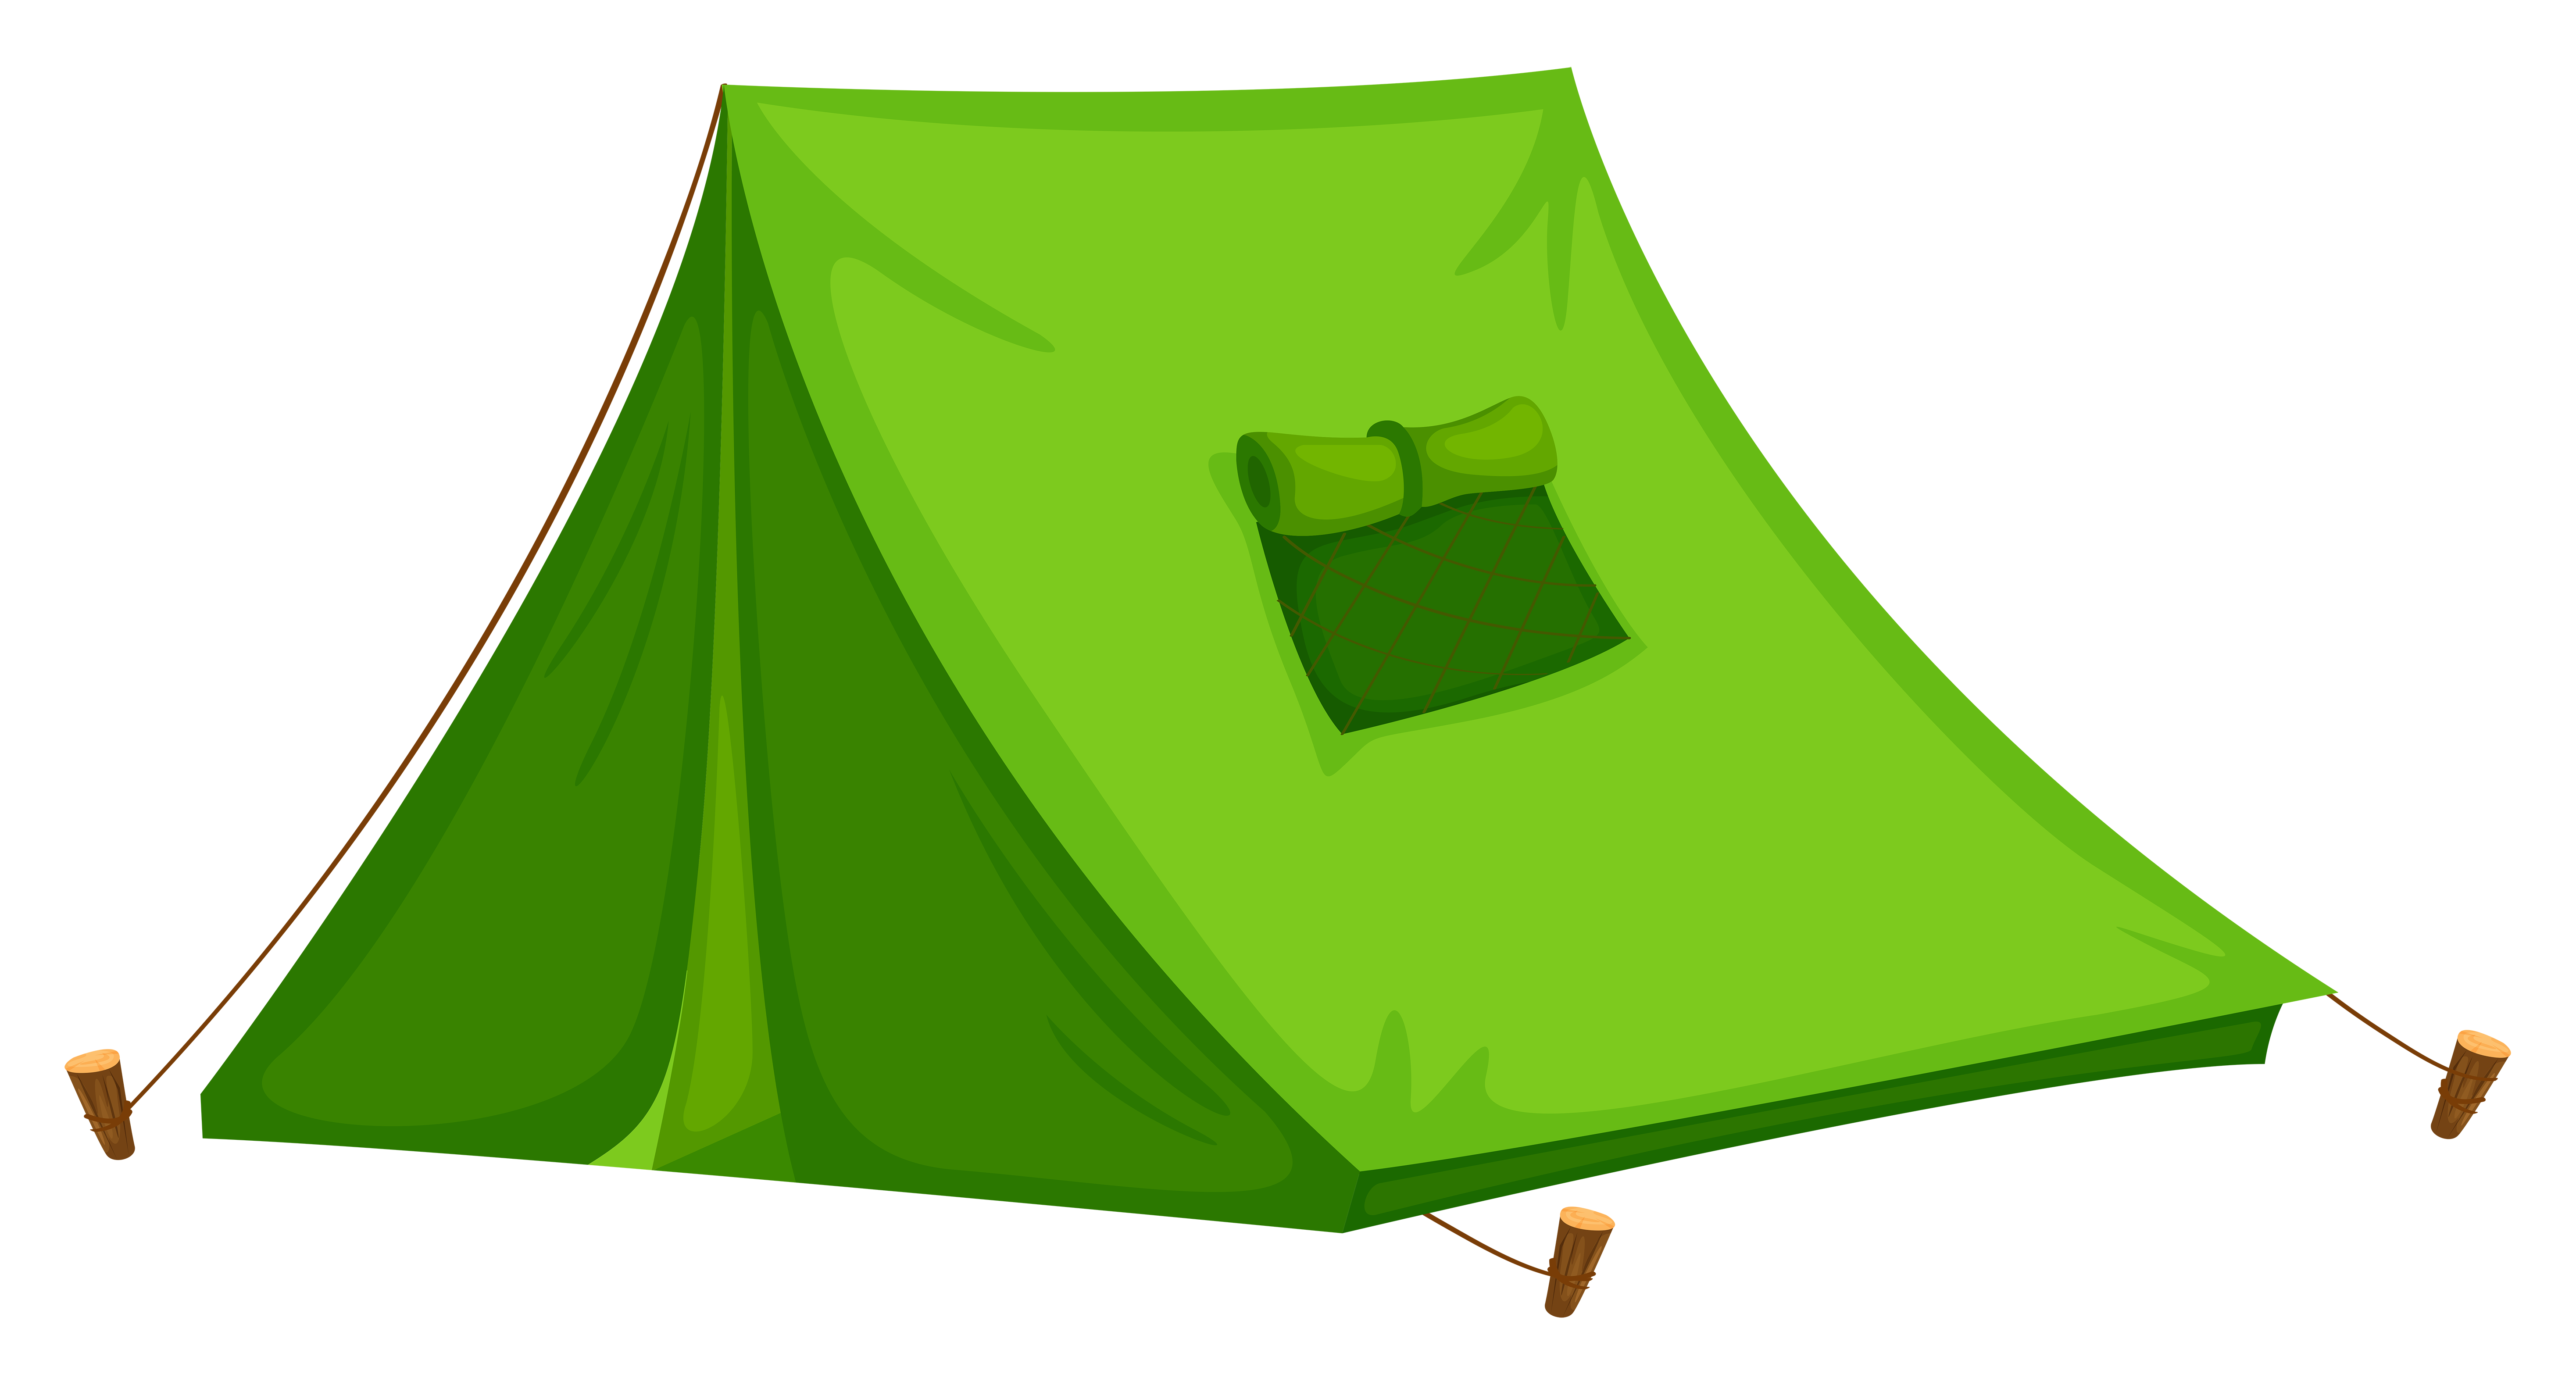 1388 Tent free clipart.